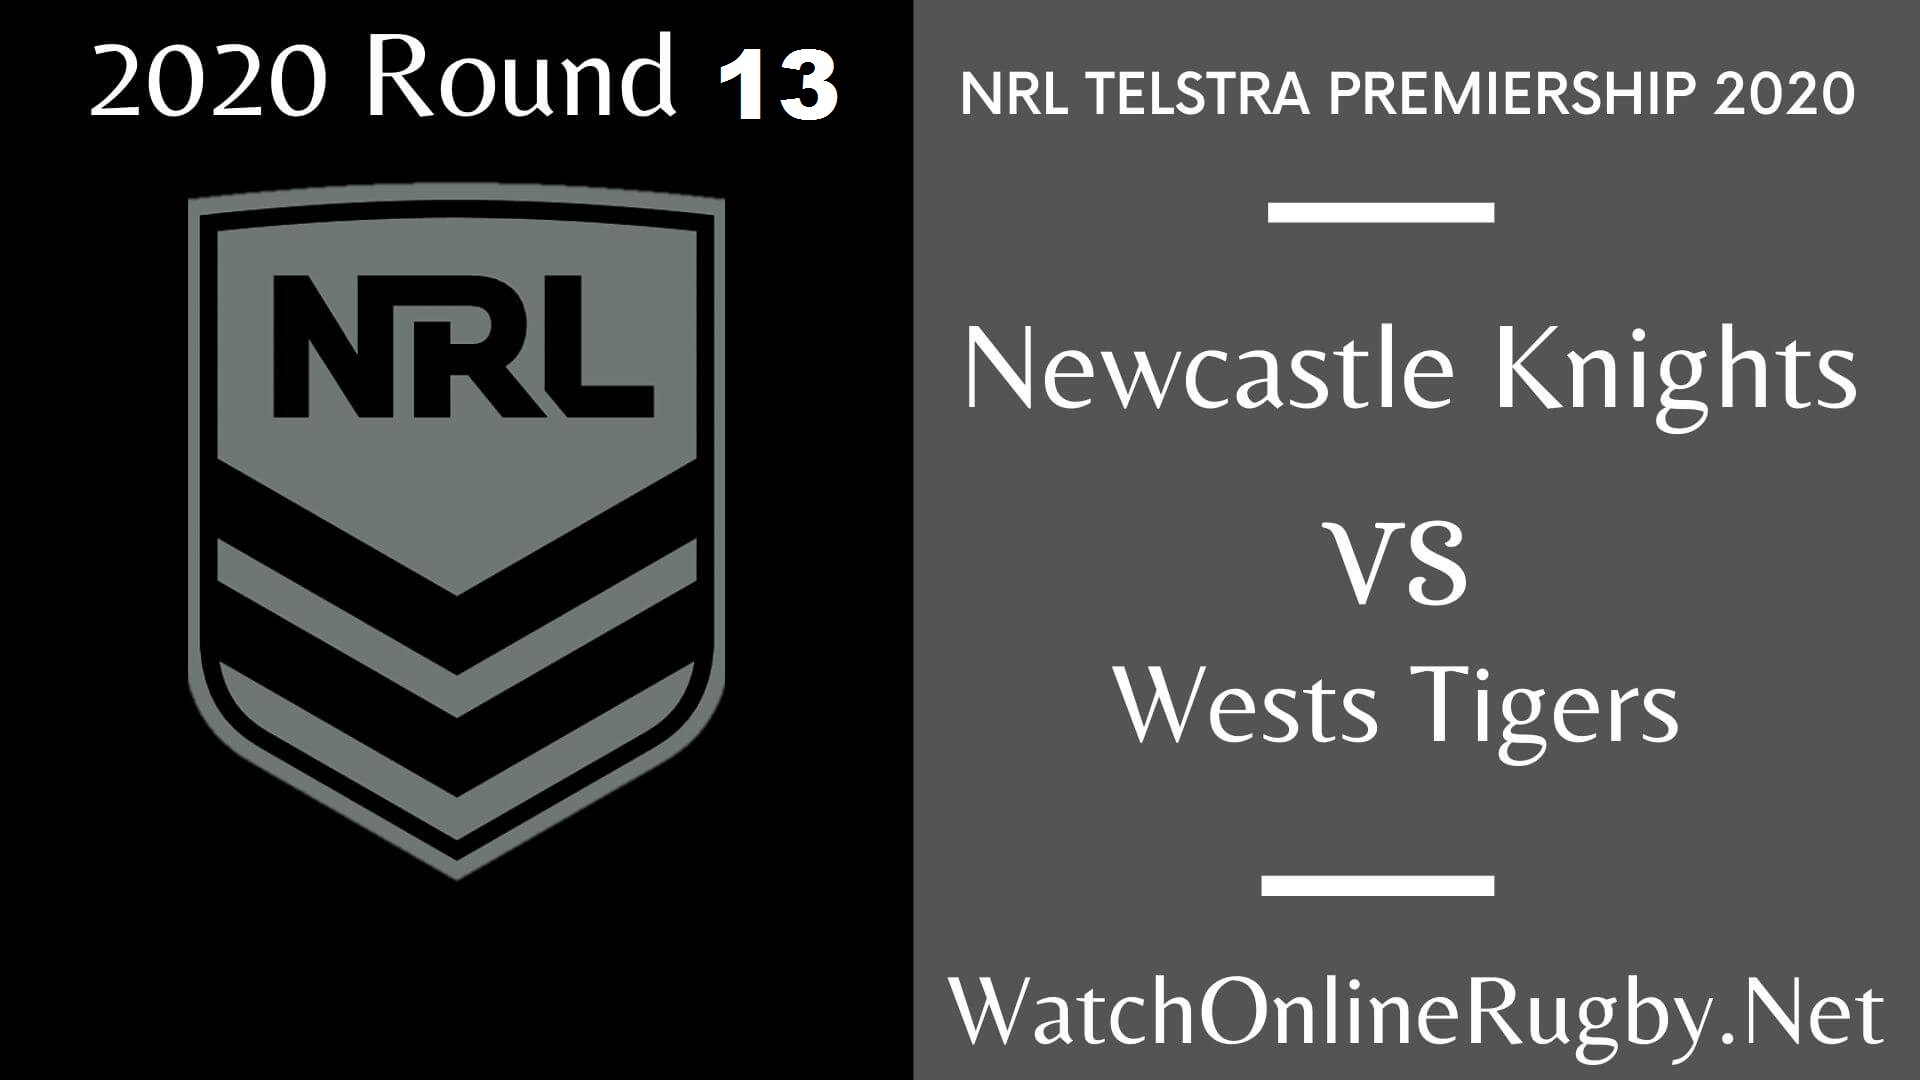 Newcastle Knights Vs Wests Tigers Highlights 2020 Round 13 NRL Rugby